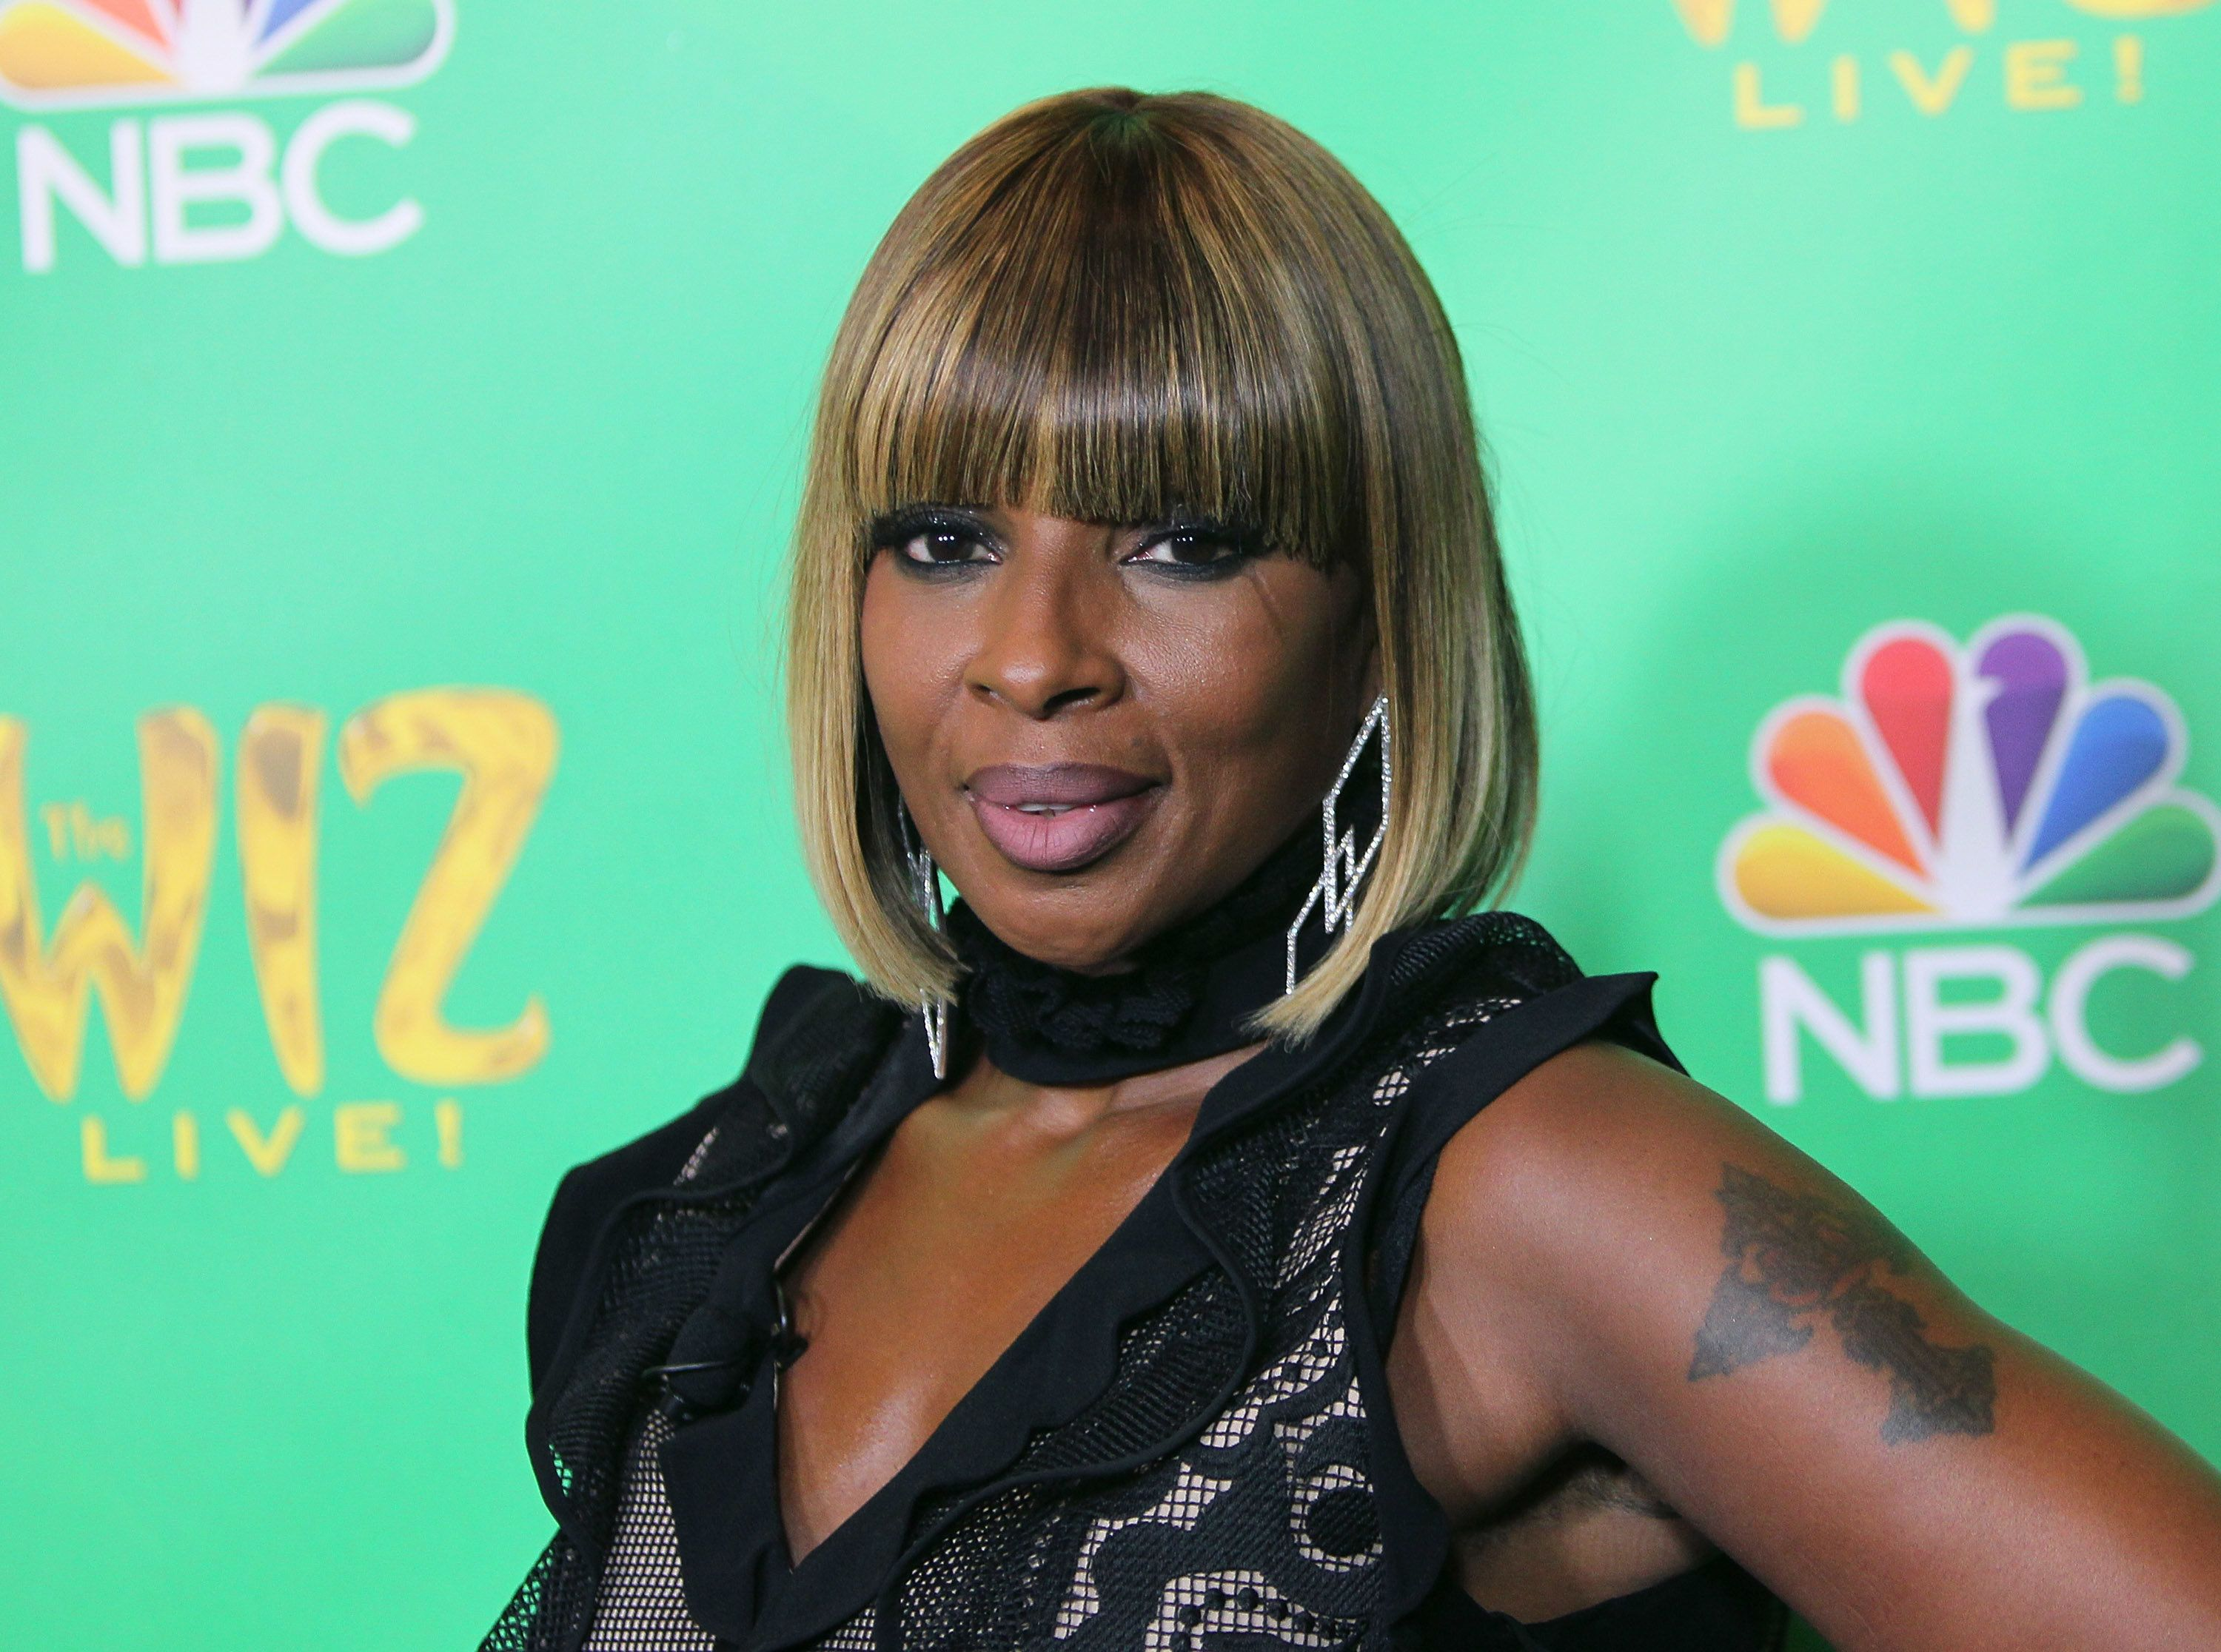 WEST HOLLYWOOD, CA - JUNE 01:  Singer Mary J. Blige attends a Television Academy event for NBC's 'The Wiz Live!' at the Director's Guild Of America on June 1, 2016 in West Hollywood, California.  (Photo by David Livingston/Getty Images)